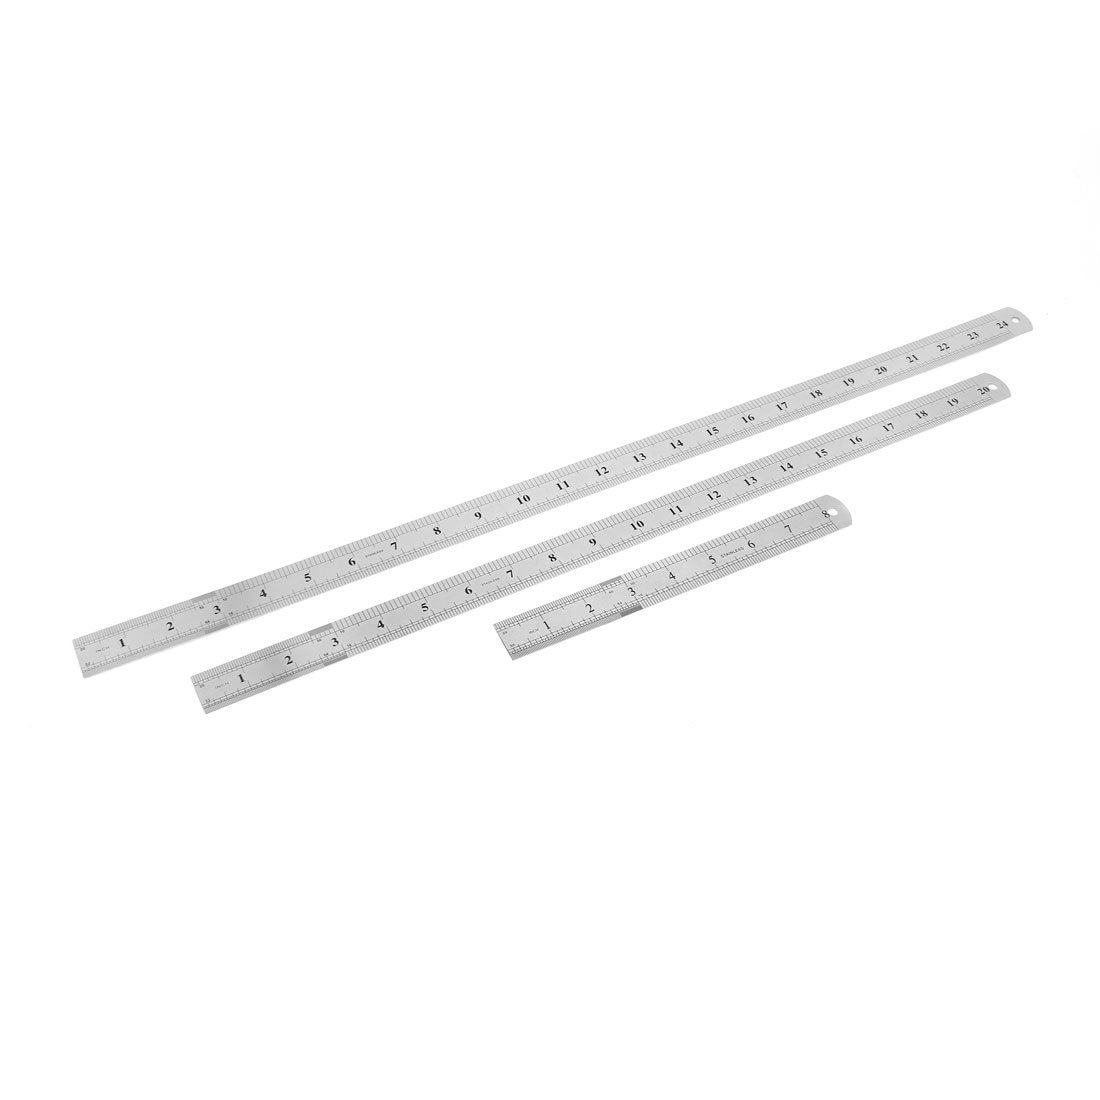 Uxcell Double Sides Straight Ruler, 20cm 50cm 60cm, 3 in 1, Silver Tone (a14081400ux0024) Dragonmarts Co. Ltd. / Uxcell